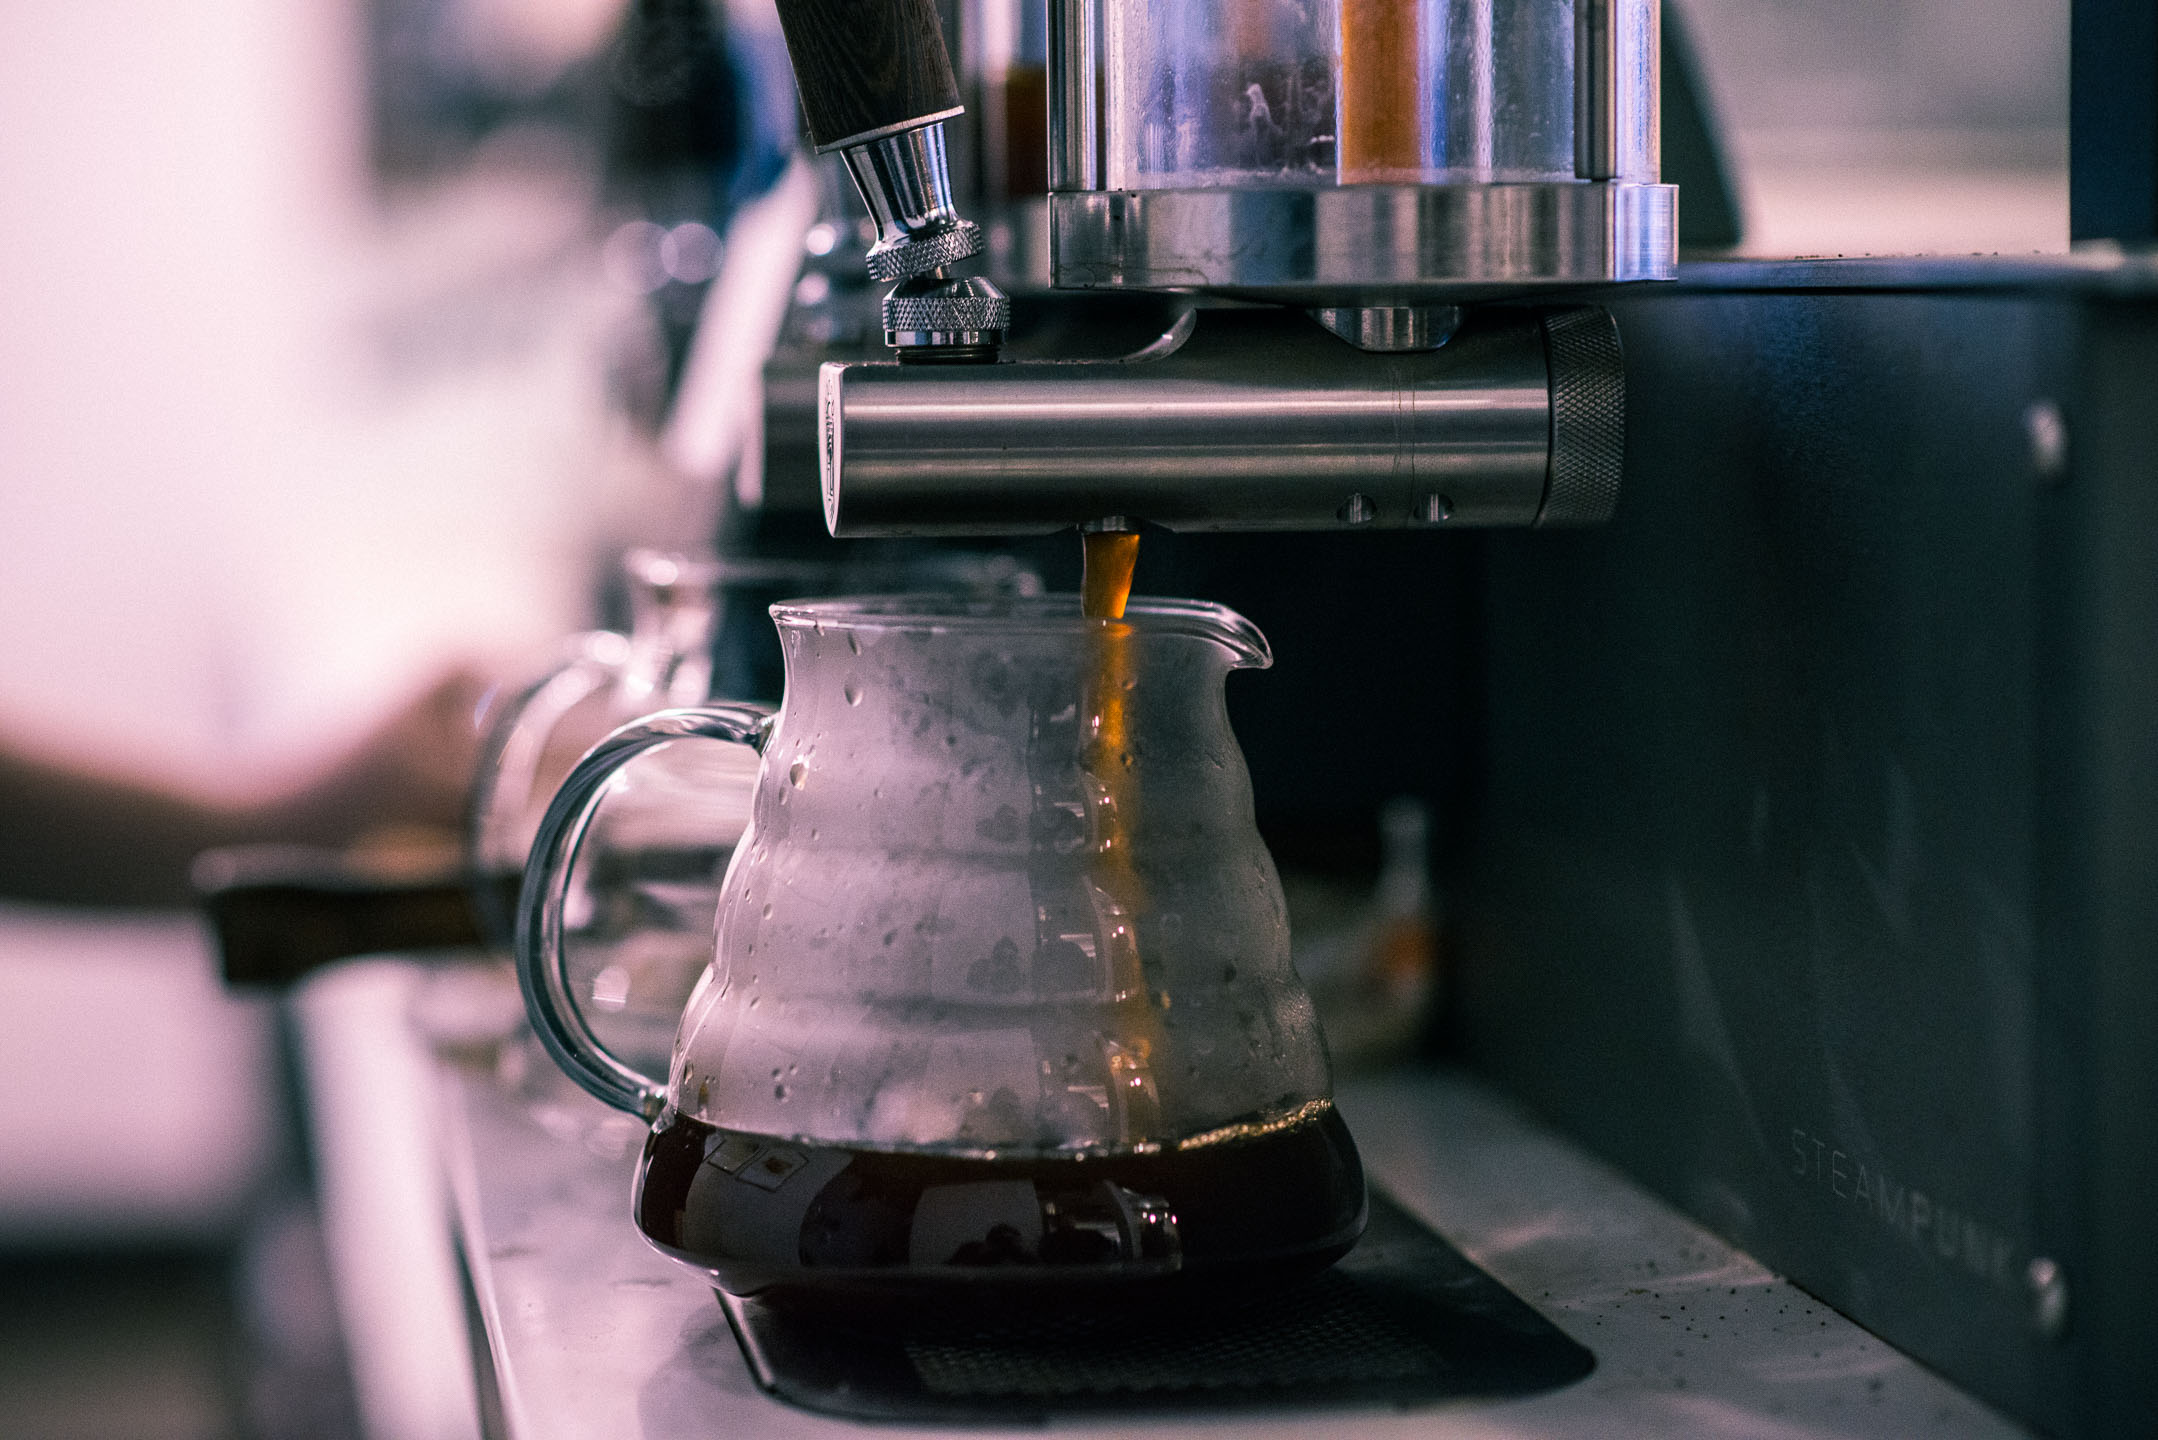 Chad_Kirkand_Photography_COFFEE-013